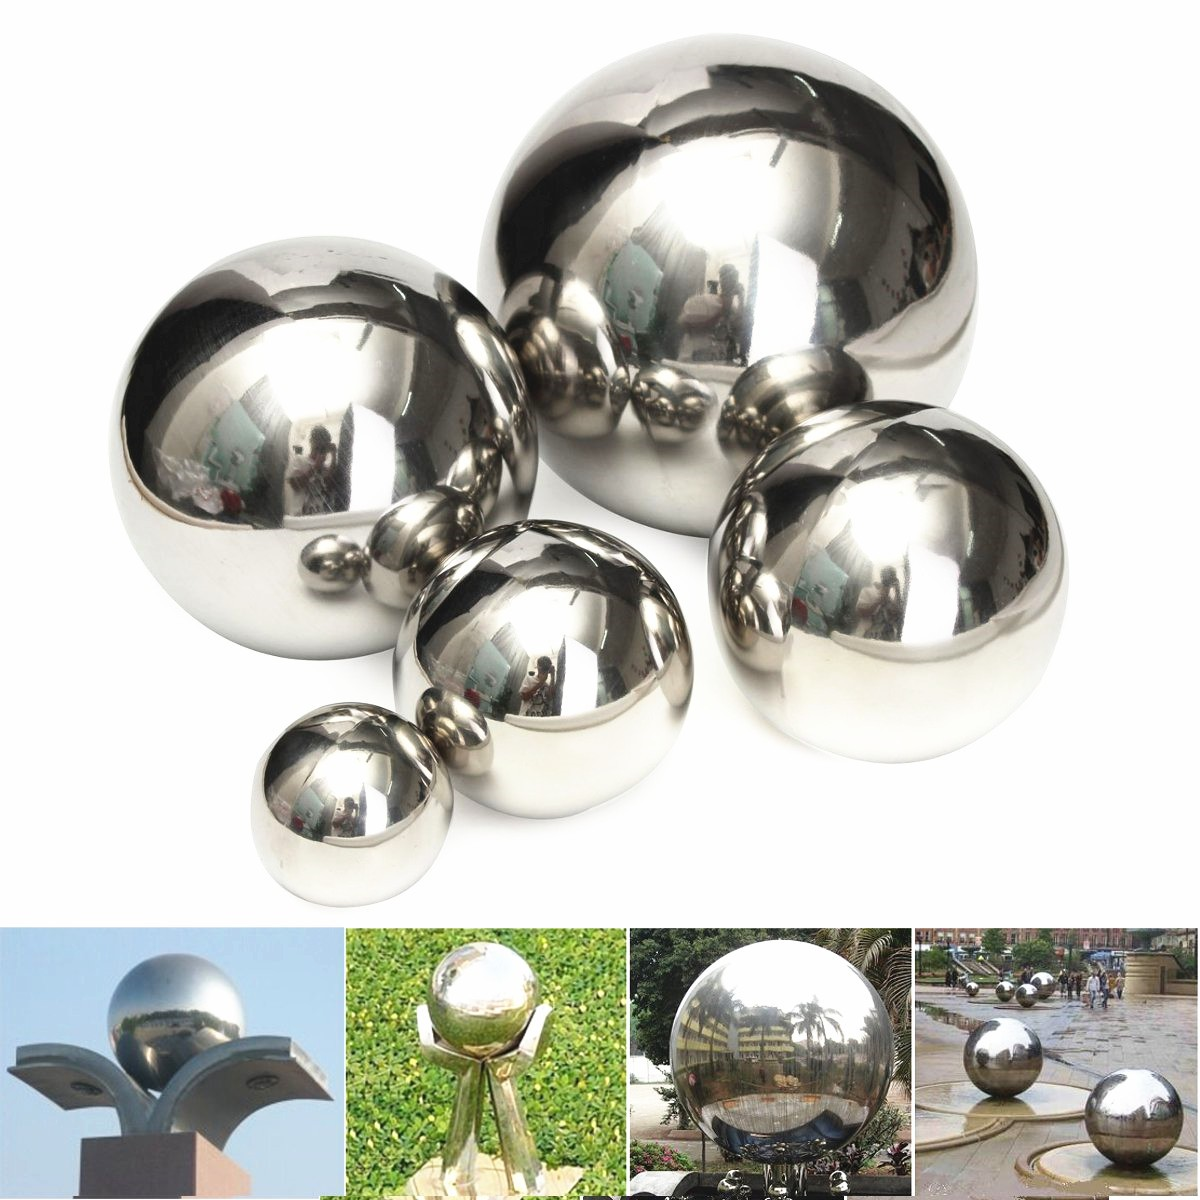 Stainless Steel Mirror Ball Polished Hollow Ball Hardware Accessories 5/8/10/12/15cm 2pcs set stainless steel 90 degree self closing cabinet closet door hinges home roomfurniture hardware accessories supply